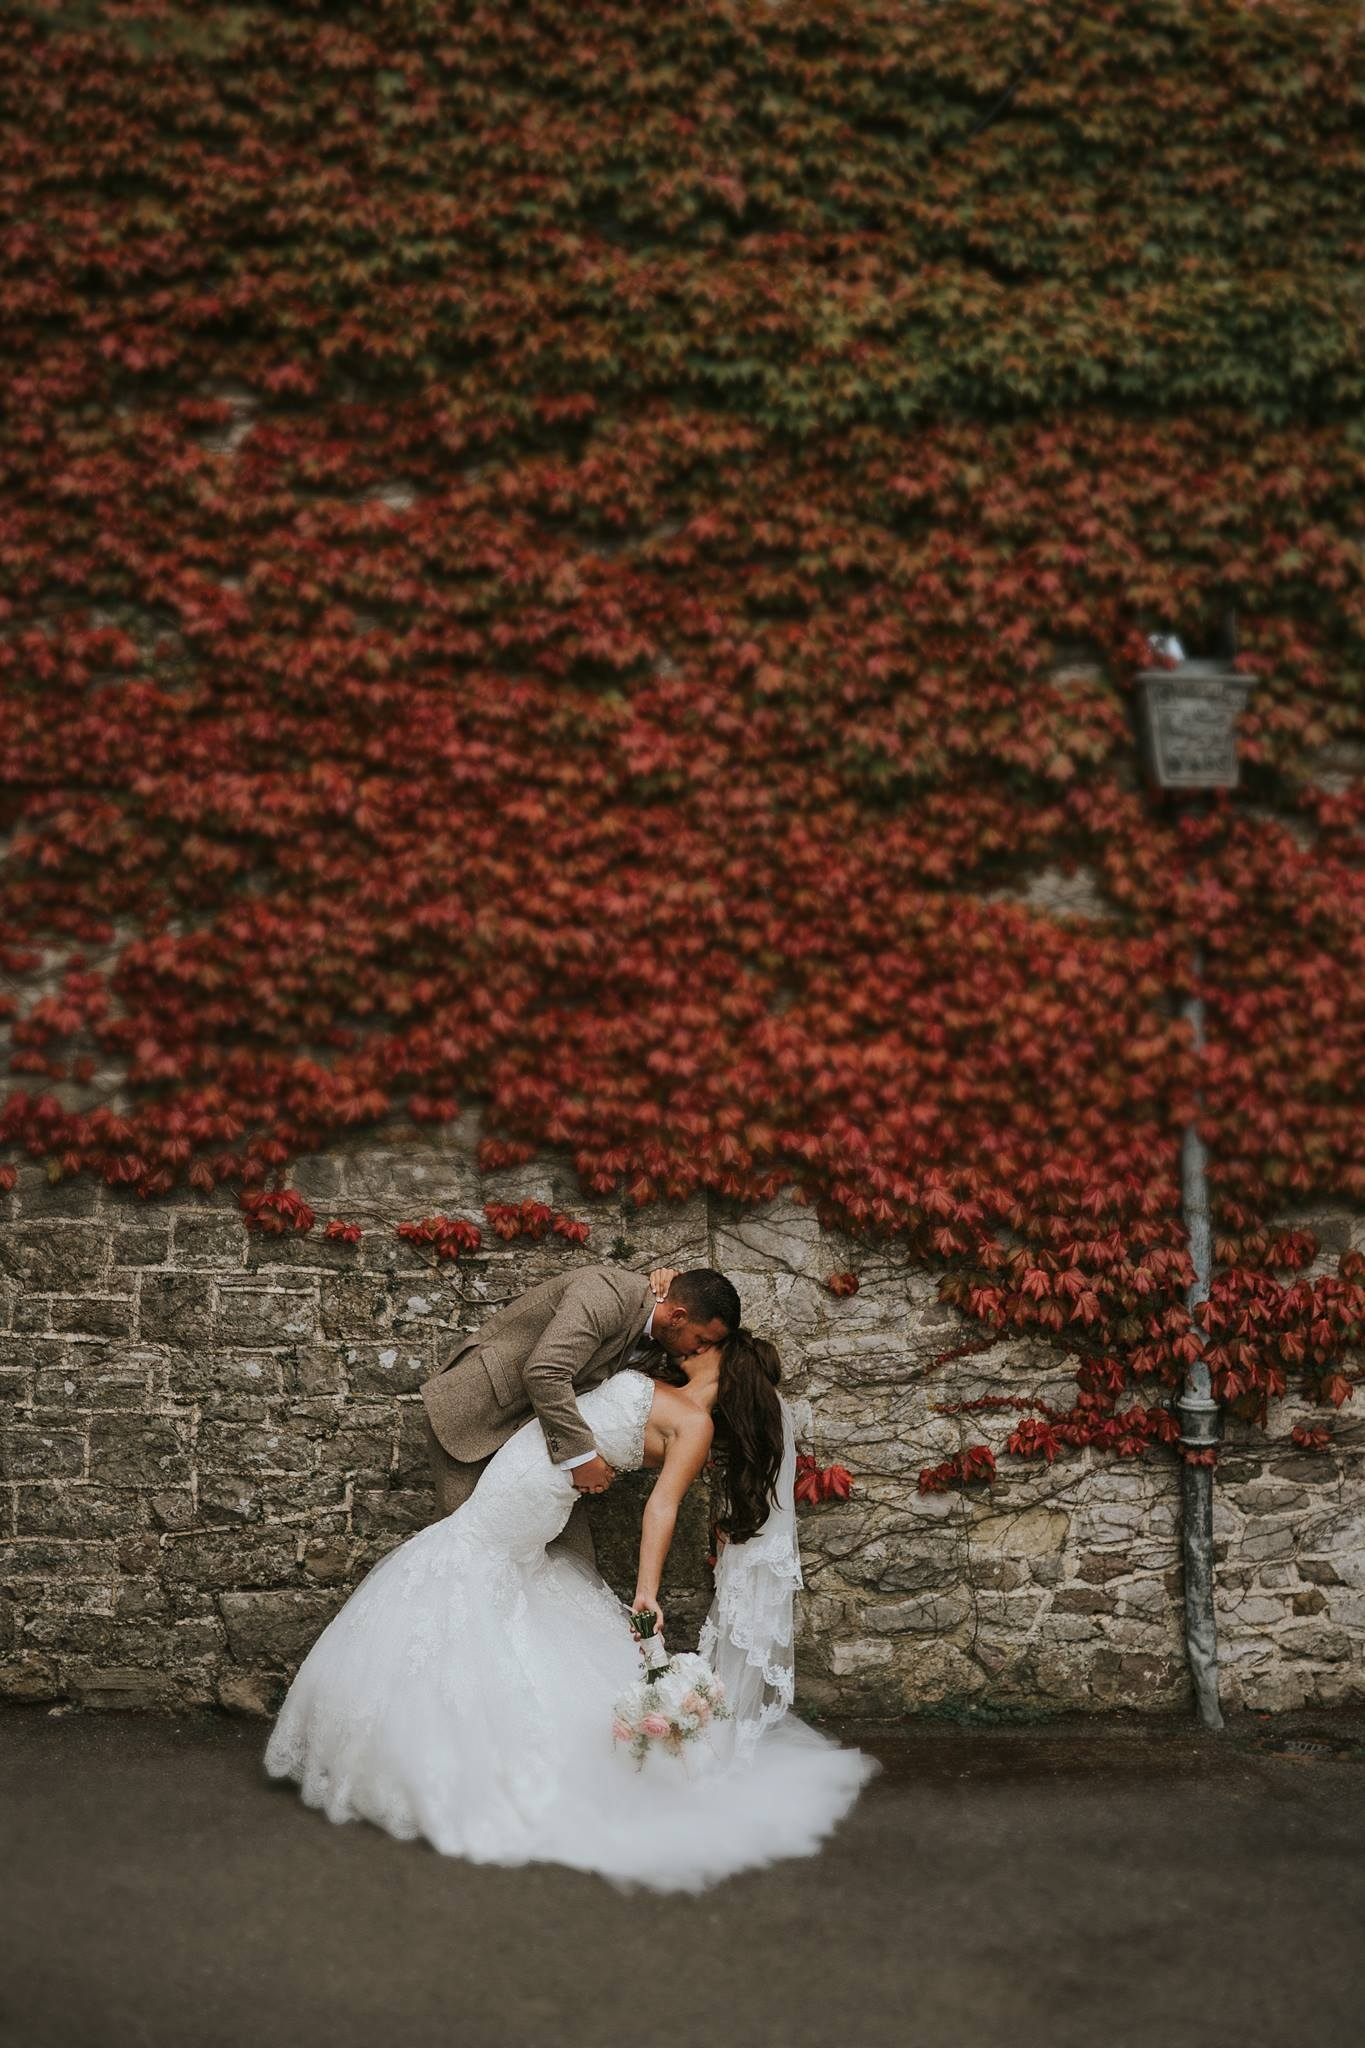 Bride and groom kiss wedding image